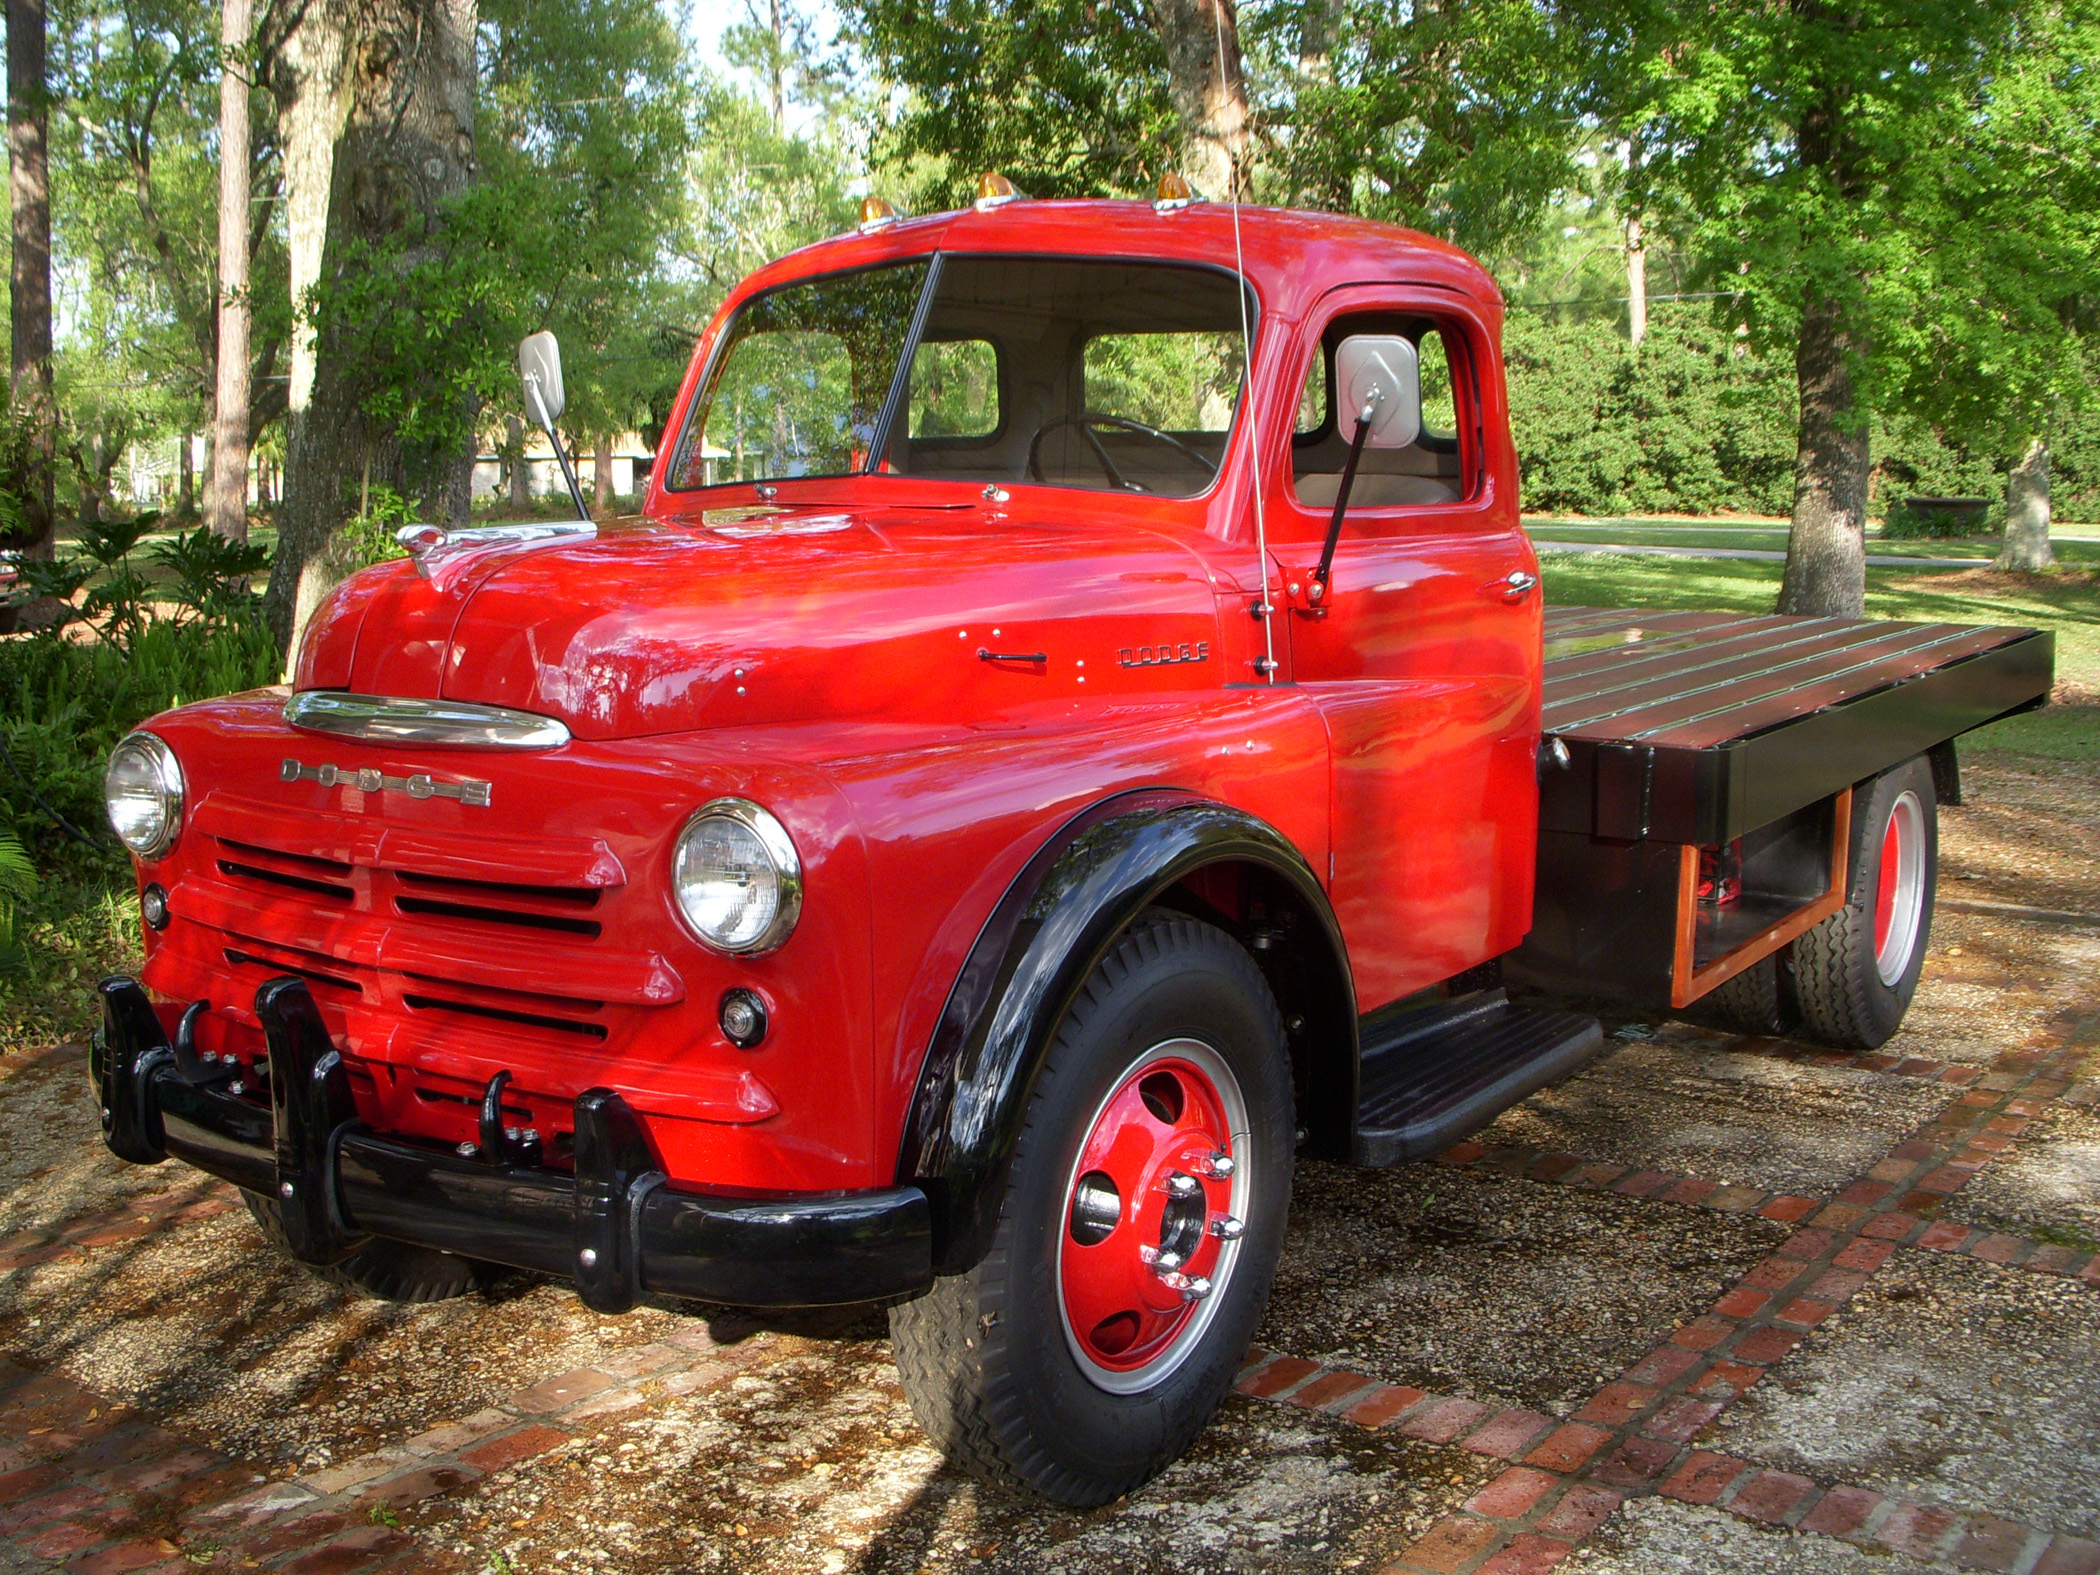 1948 Dodge truck was used for hard work on southern rice farm ...